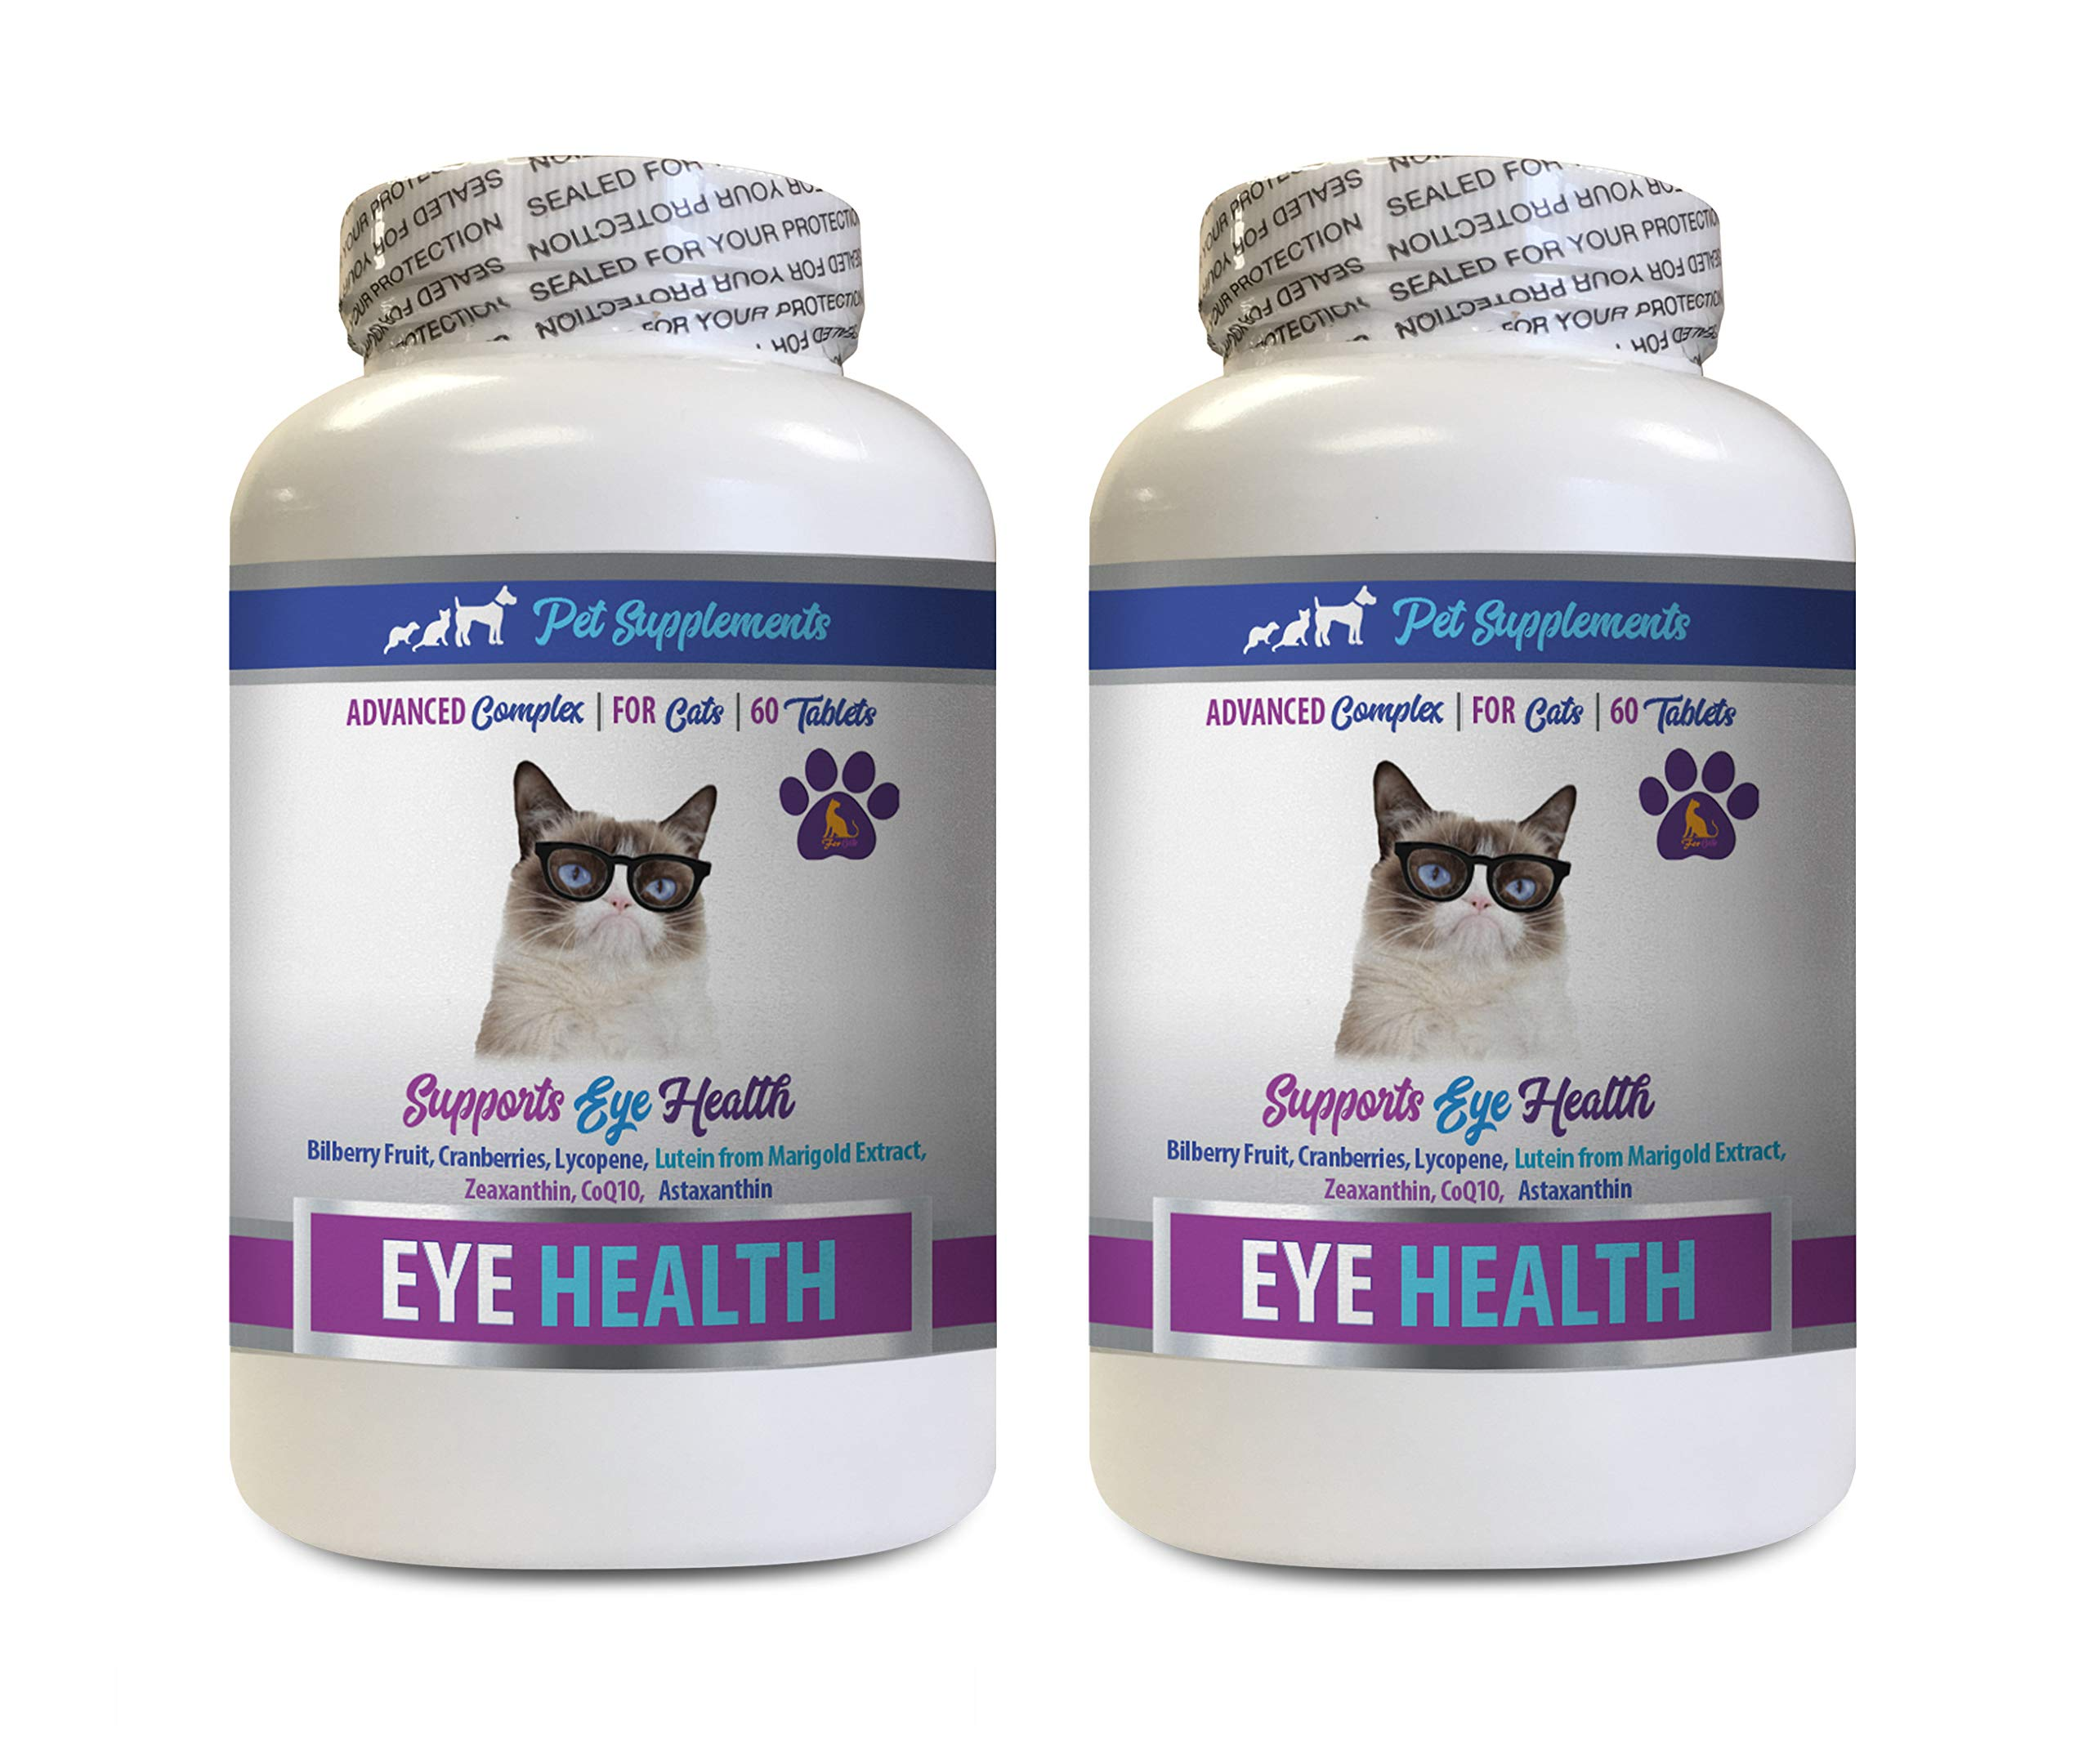 PET SUPPLEMENTS cat Eyesight Supplement - Cats Eye Health Complex - Advanced Formula for Eye Sight - Immune Boost - Bilberry for Cats - 2 Bottles (120 Tablets) by PET SUPPLEMENTS